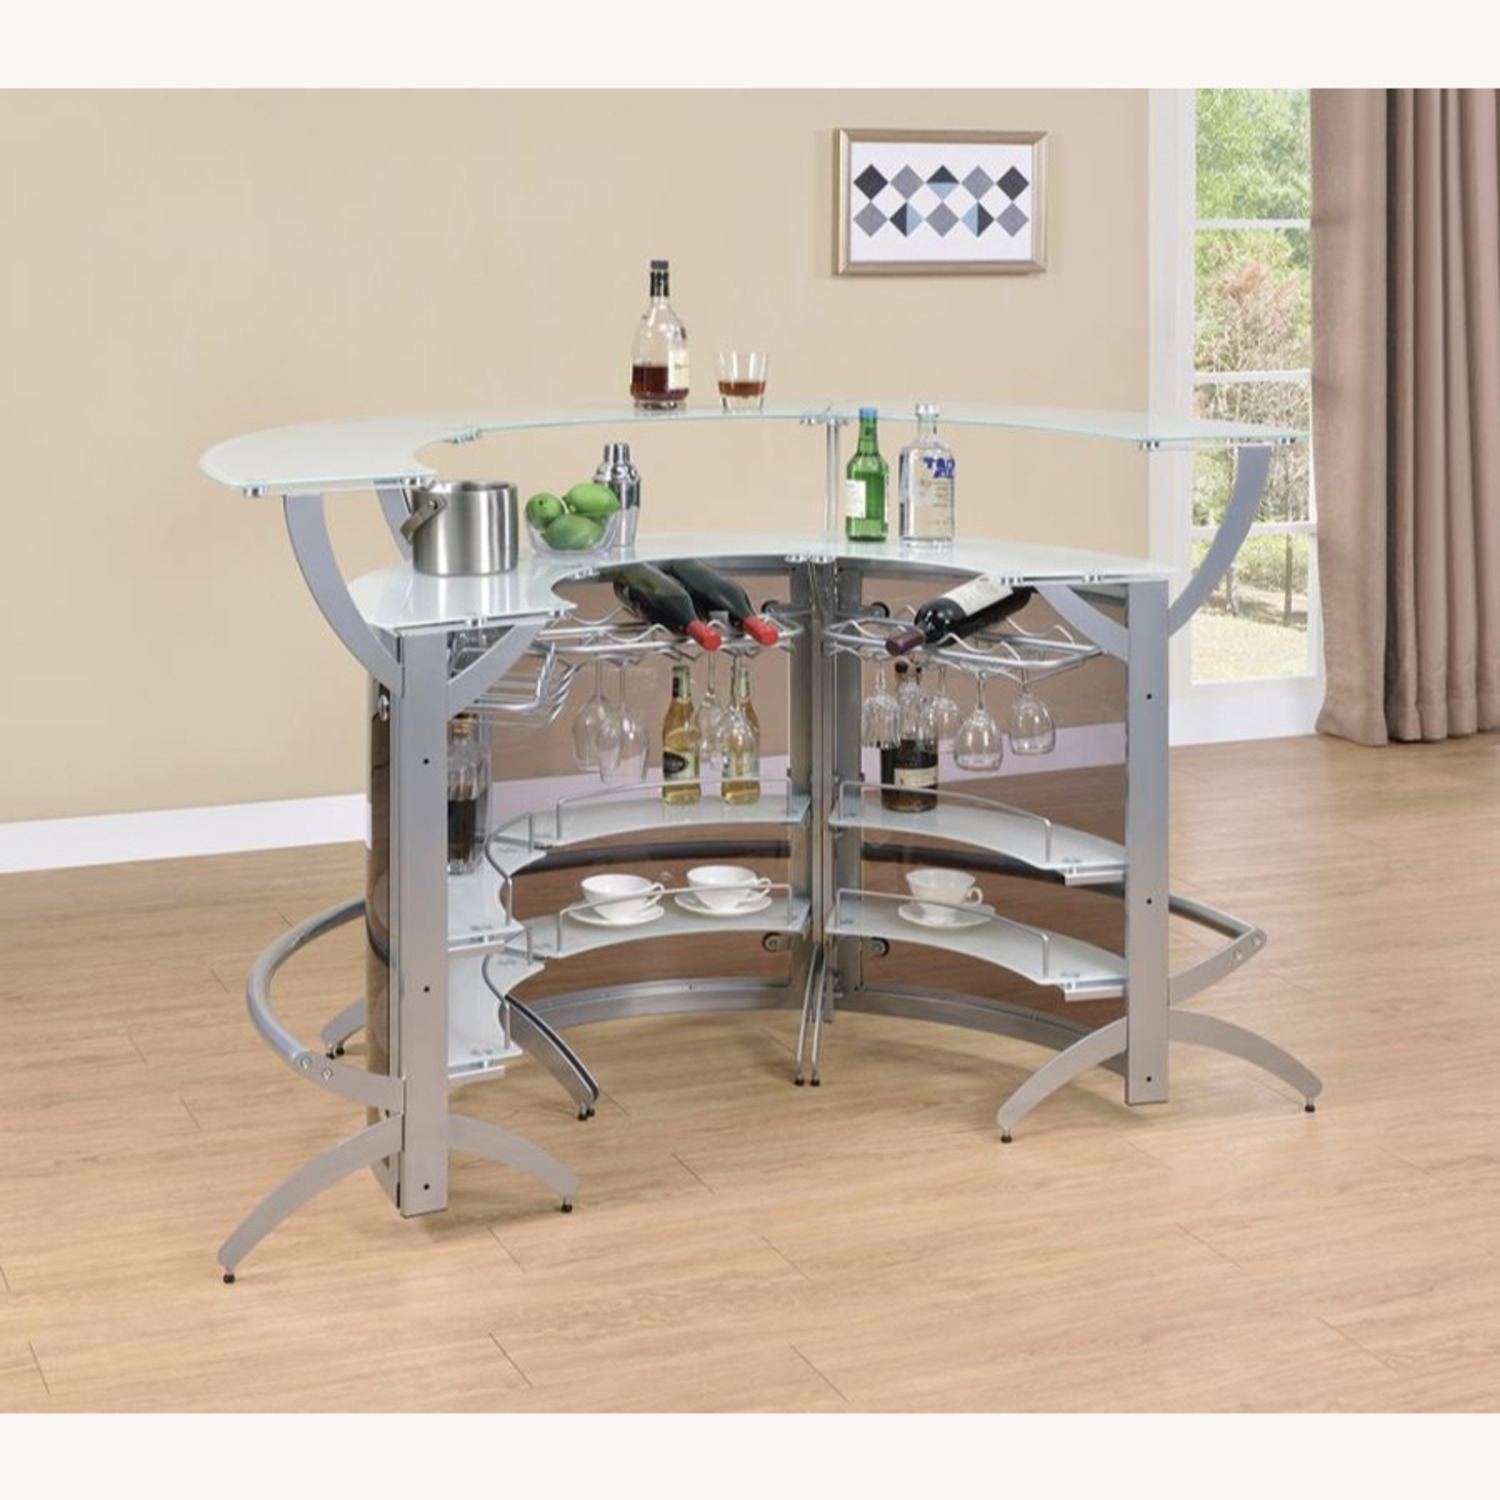 3-Piece Bar Unit Set In Smoked Acrylic & Silver - image-2